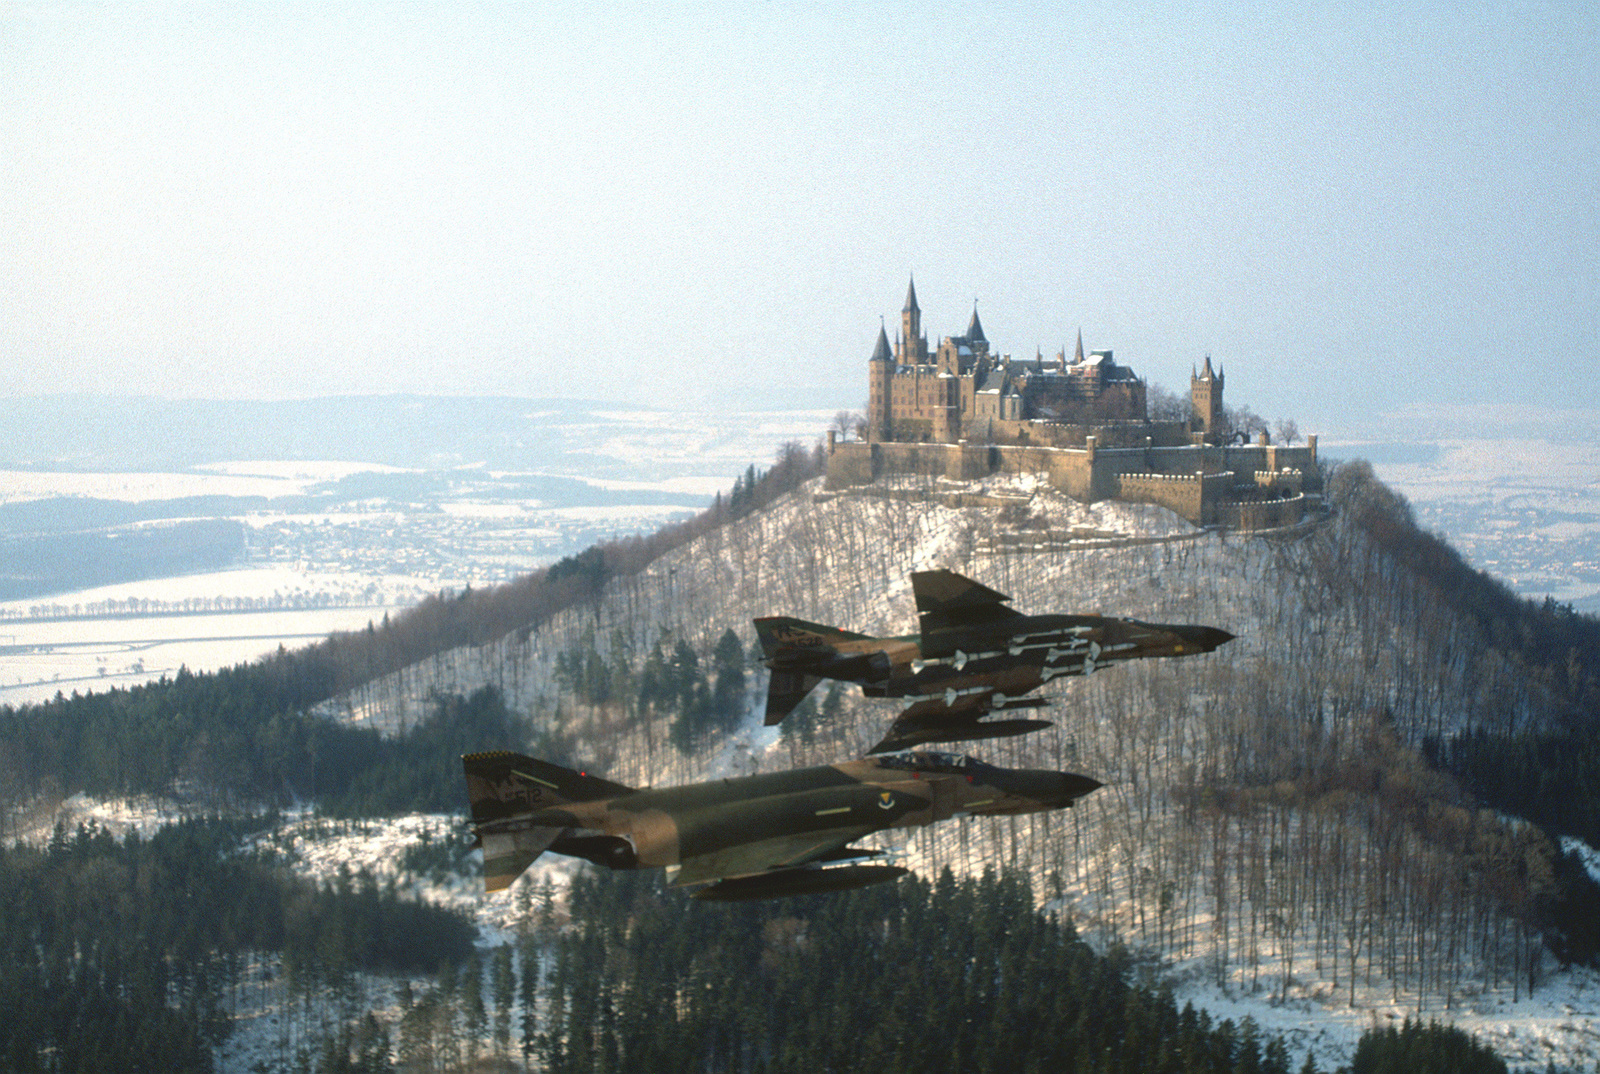 Two F-4E Phantom II aircraft assigned to the 512th and 526th Tactical Fighter Squadrons fly one of their last aerial missions over Castle Burg-Hollenzollern, near Ramstein Air Base. Both squadrons will replace their Phantoms with F-16 Fighting Falcon aircraft. Tail No. 512 is piloted by Lt. Col. Bruce Gillett and navigated by Capt. Mike Craig. Lt. Col. Tom Speelman is piloting tail No. 526 with 1st Lt. John Rogers navigating